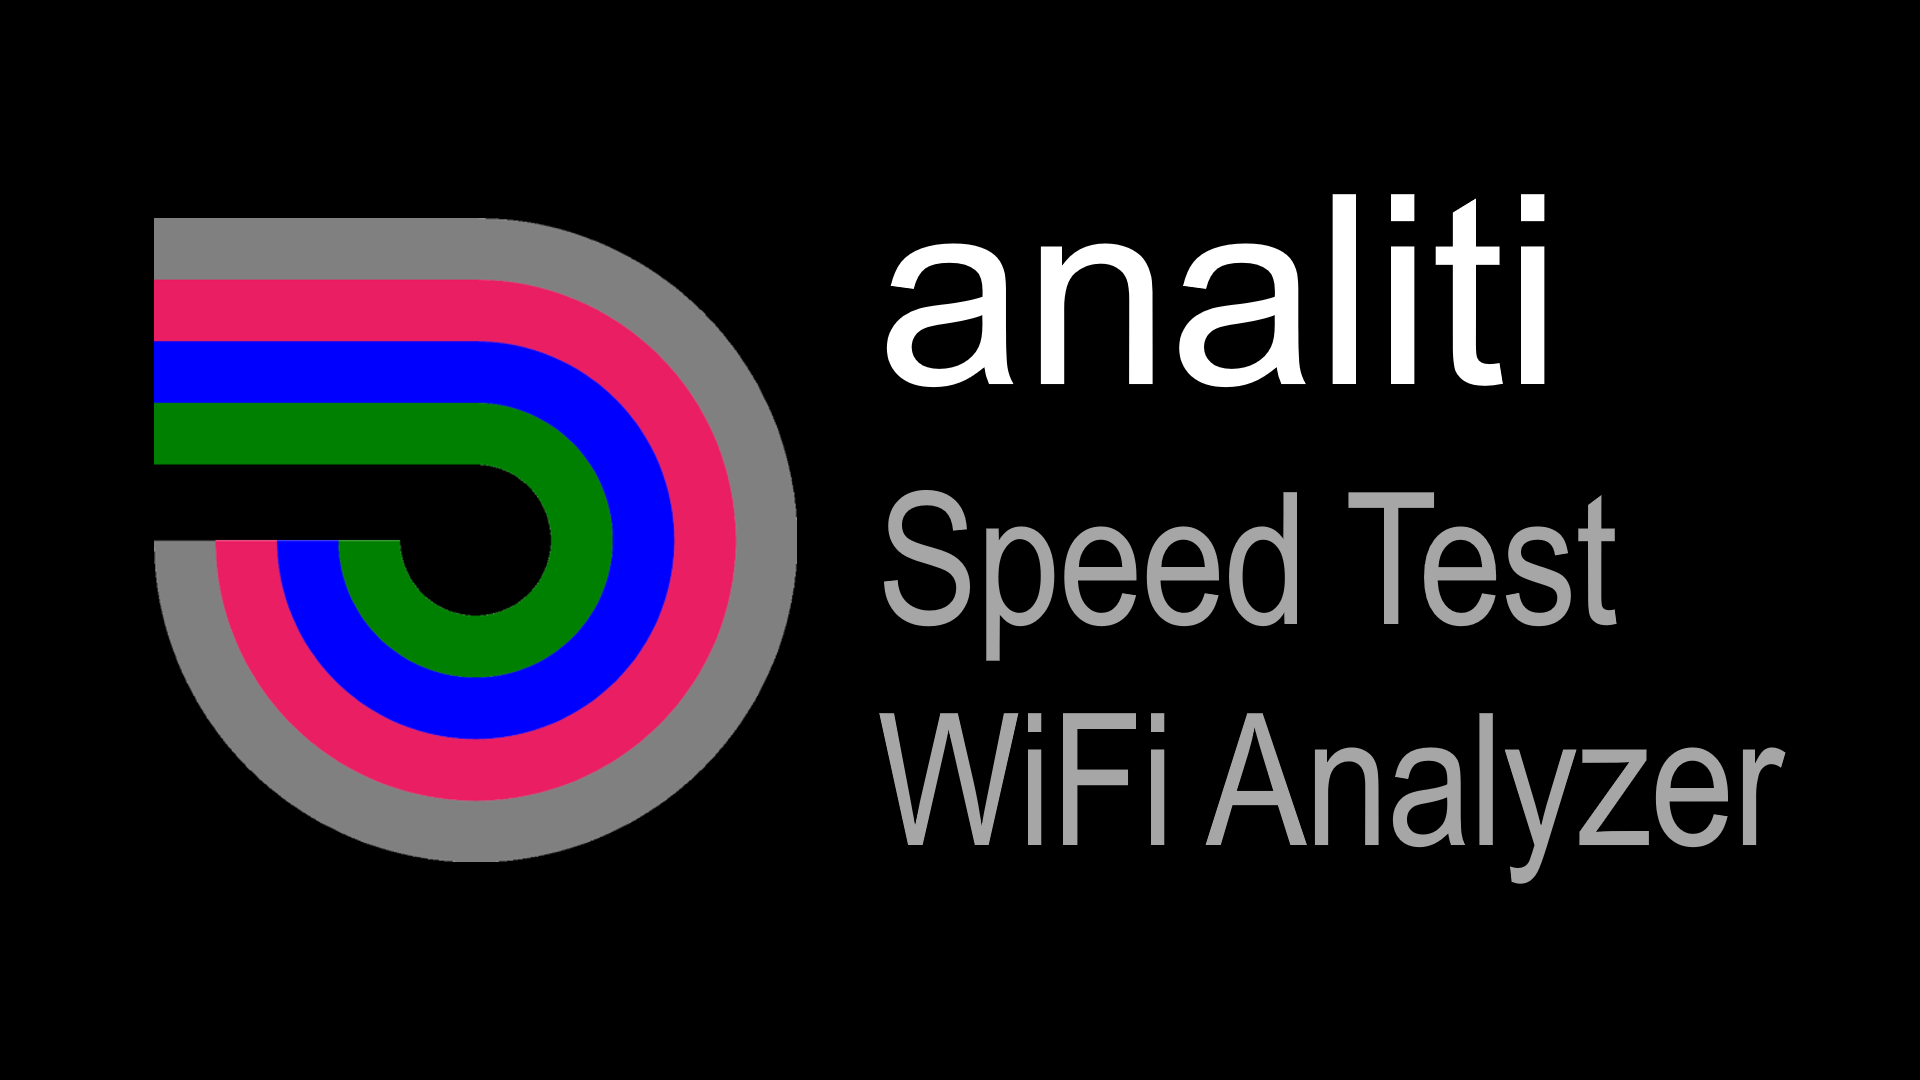 Amazon.com: analiti - Speed Test WiFi Analyzer Expert: Appstore for Android